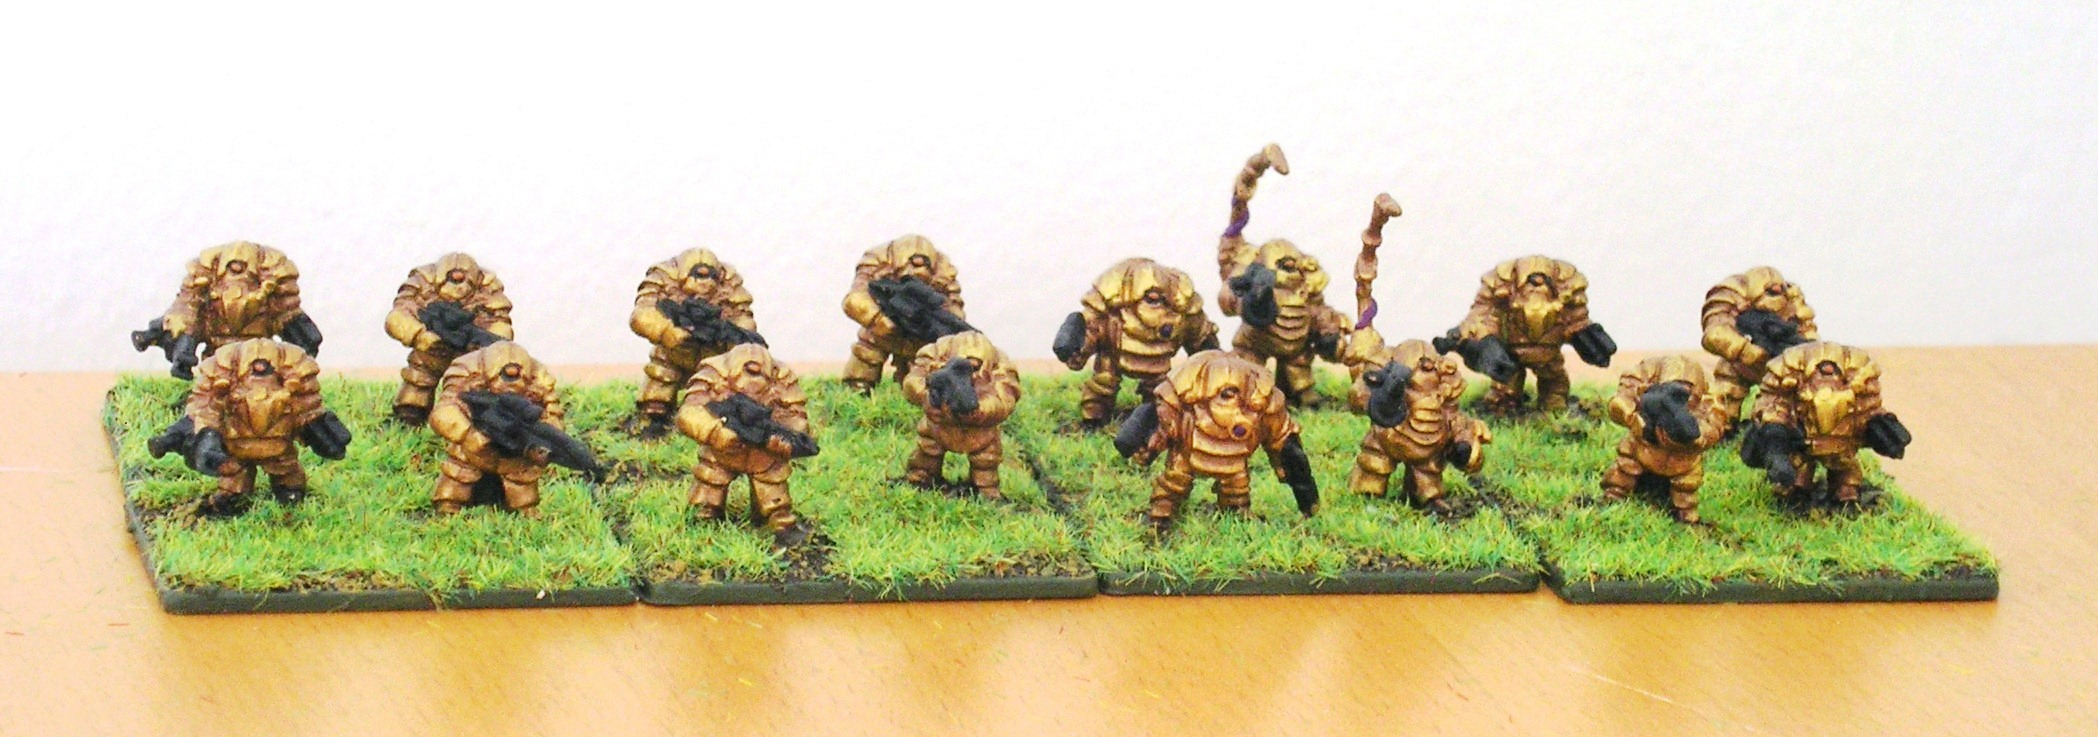 A squad of gitungi veteran infantry from Micropanzer